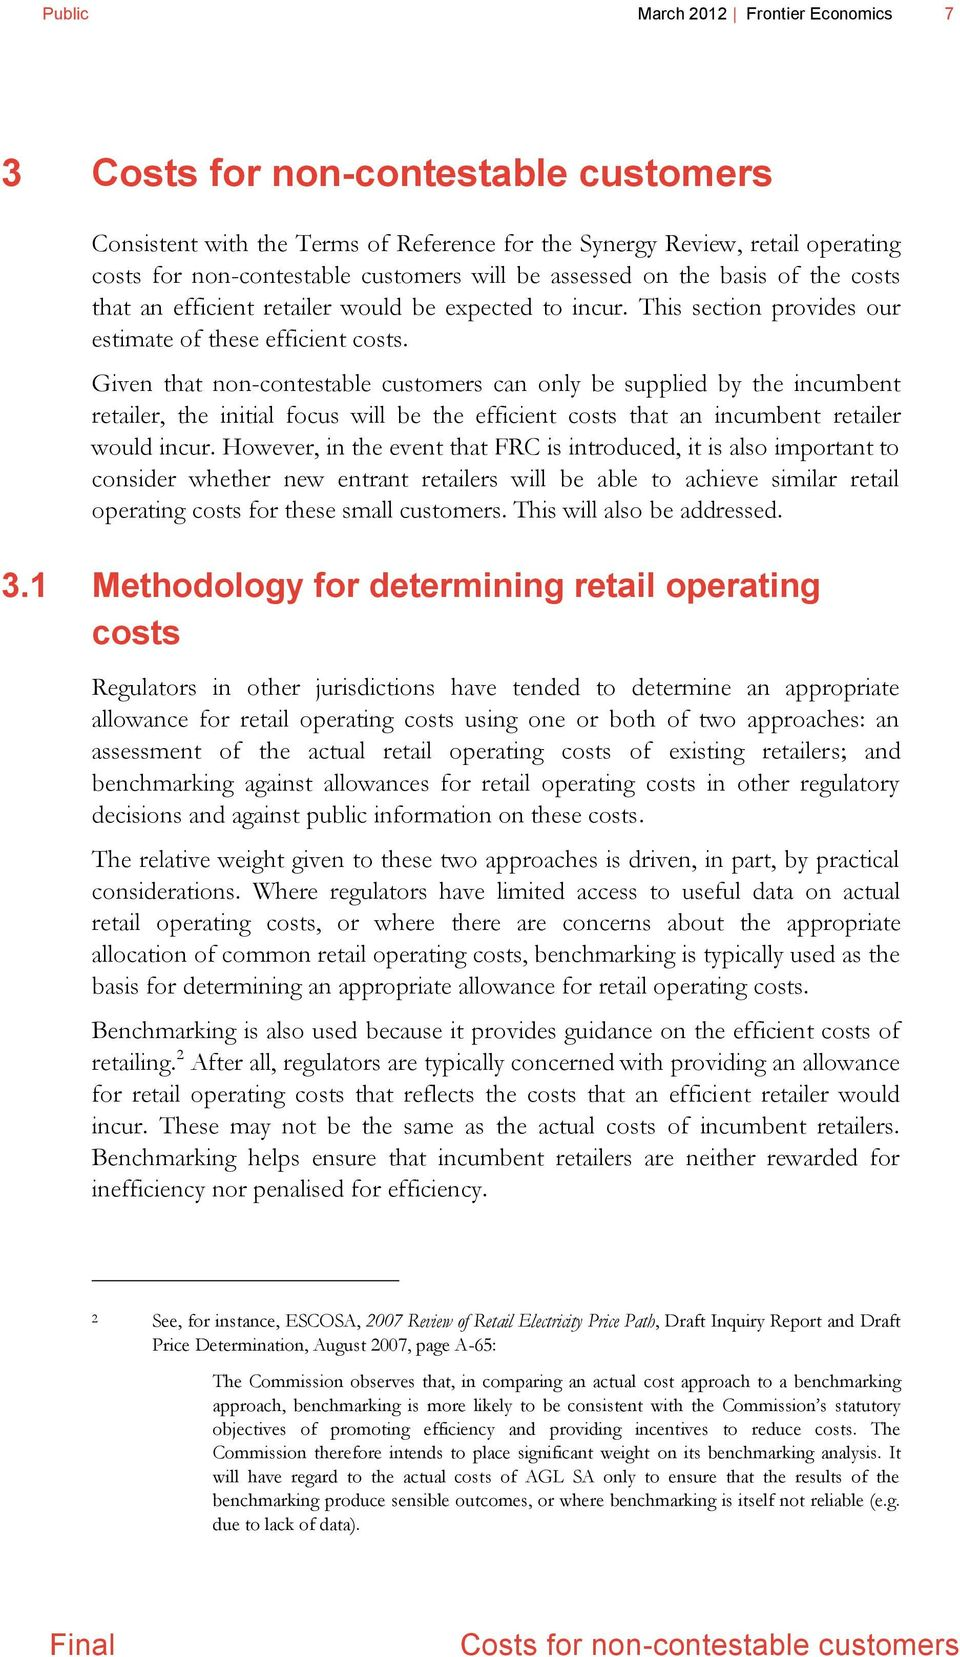 Given that non-contestable customers can only be supplied by the incumbent retailer, the initial focus will be the efficient costs that an incumbent retailer would incur.